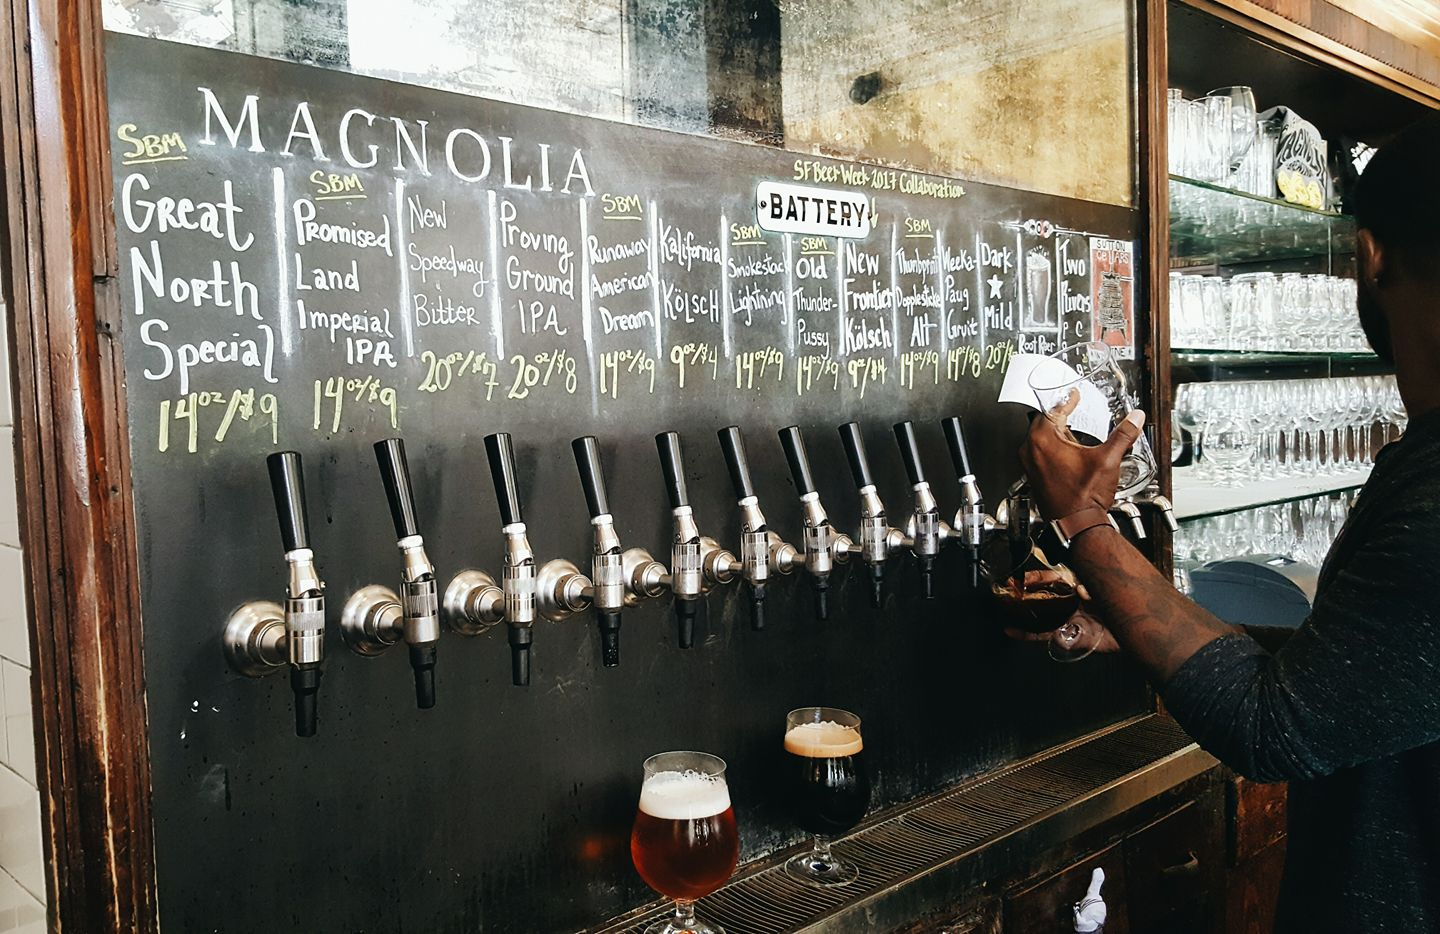 The taps at Magnolia Brewery